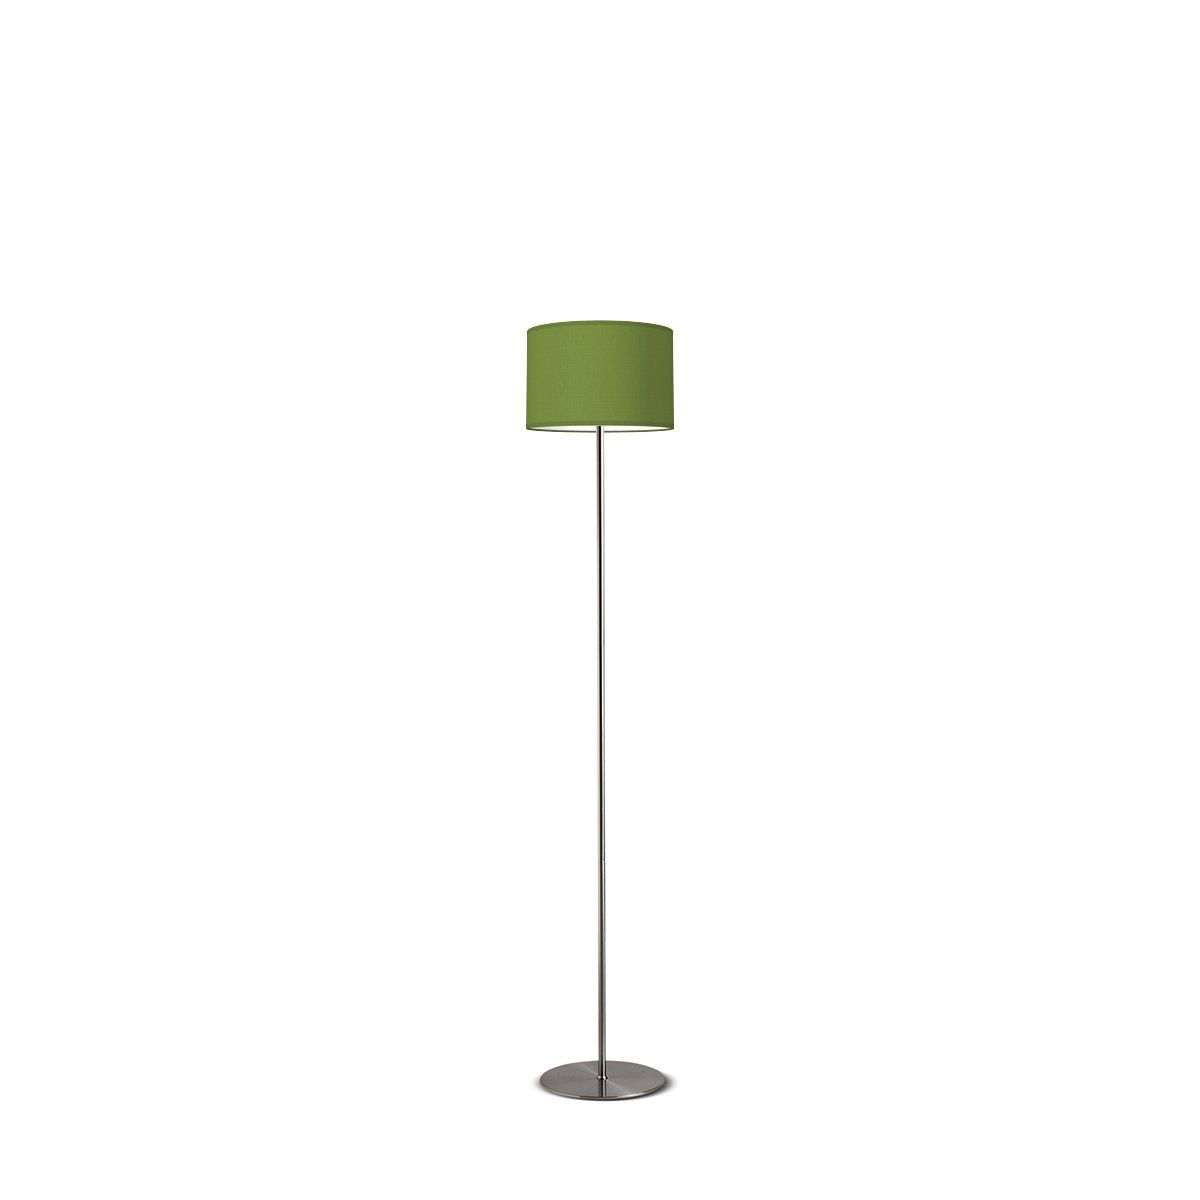 HOME SWEET HOME vloerlamp lift bling Ø 30 cm - Forest green